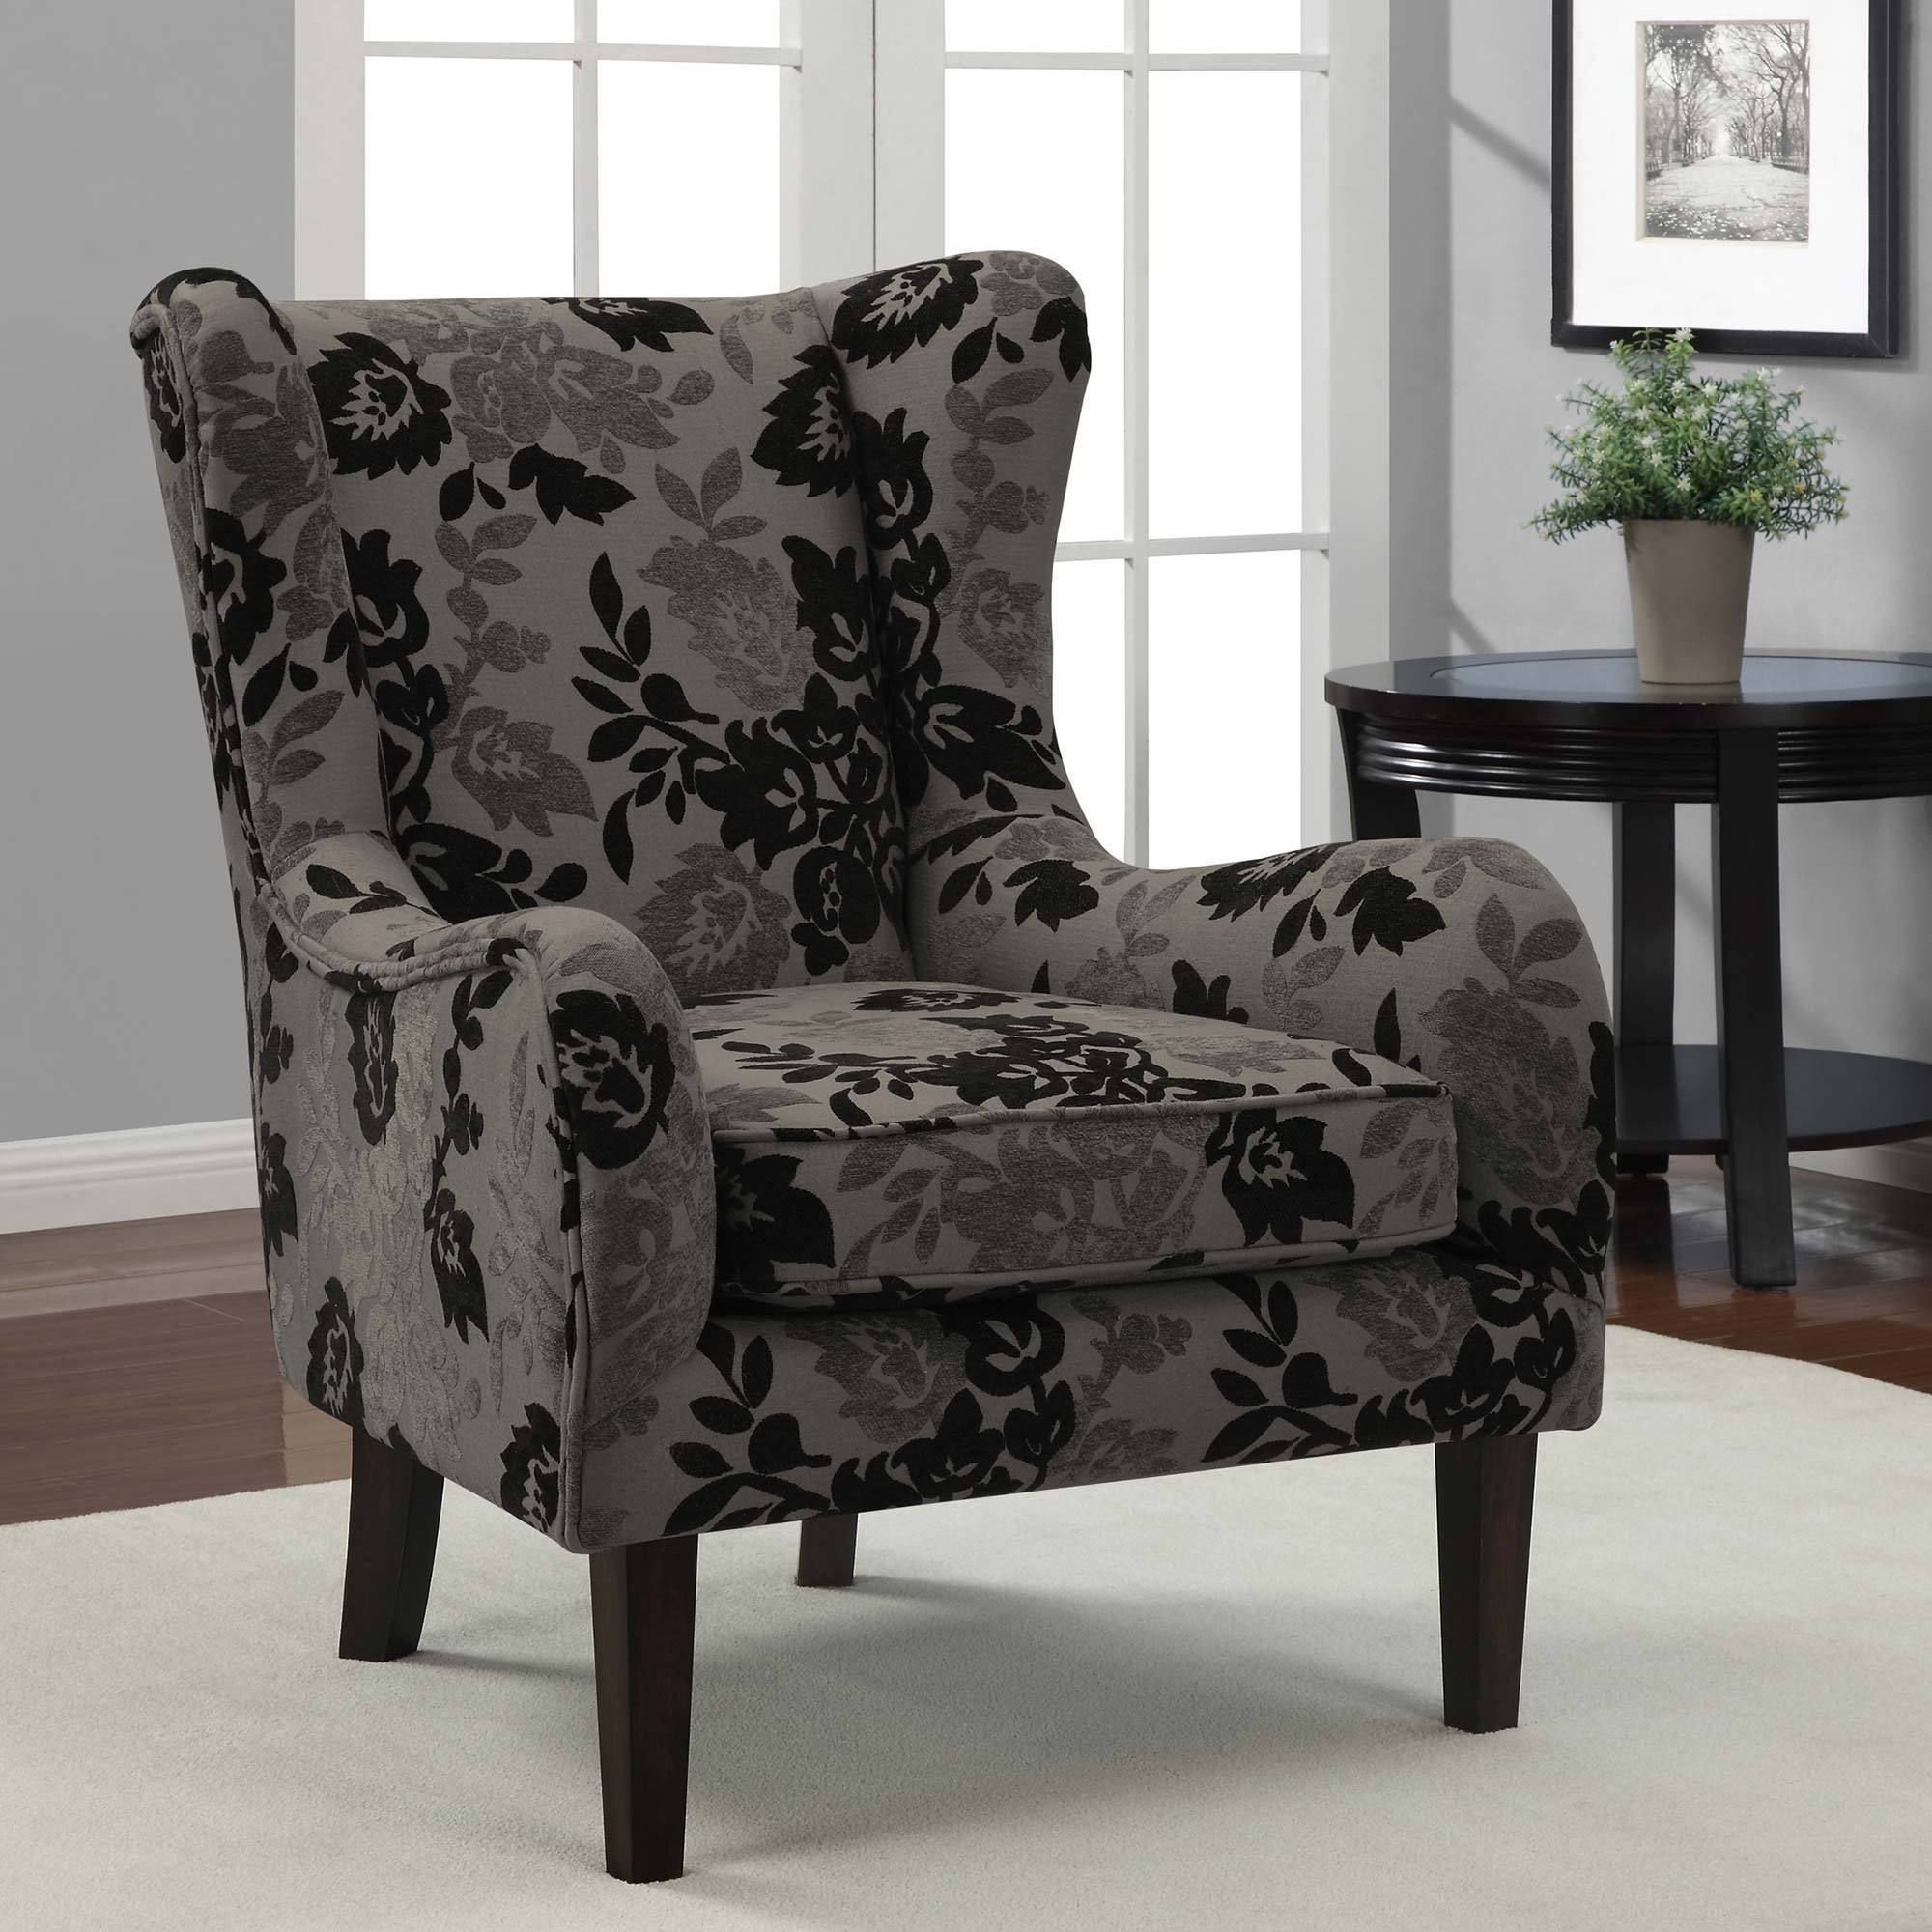 This Chair Features A Classic Wing Chair Design With A